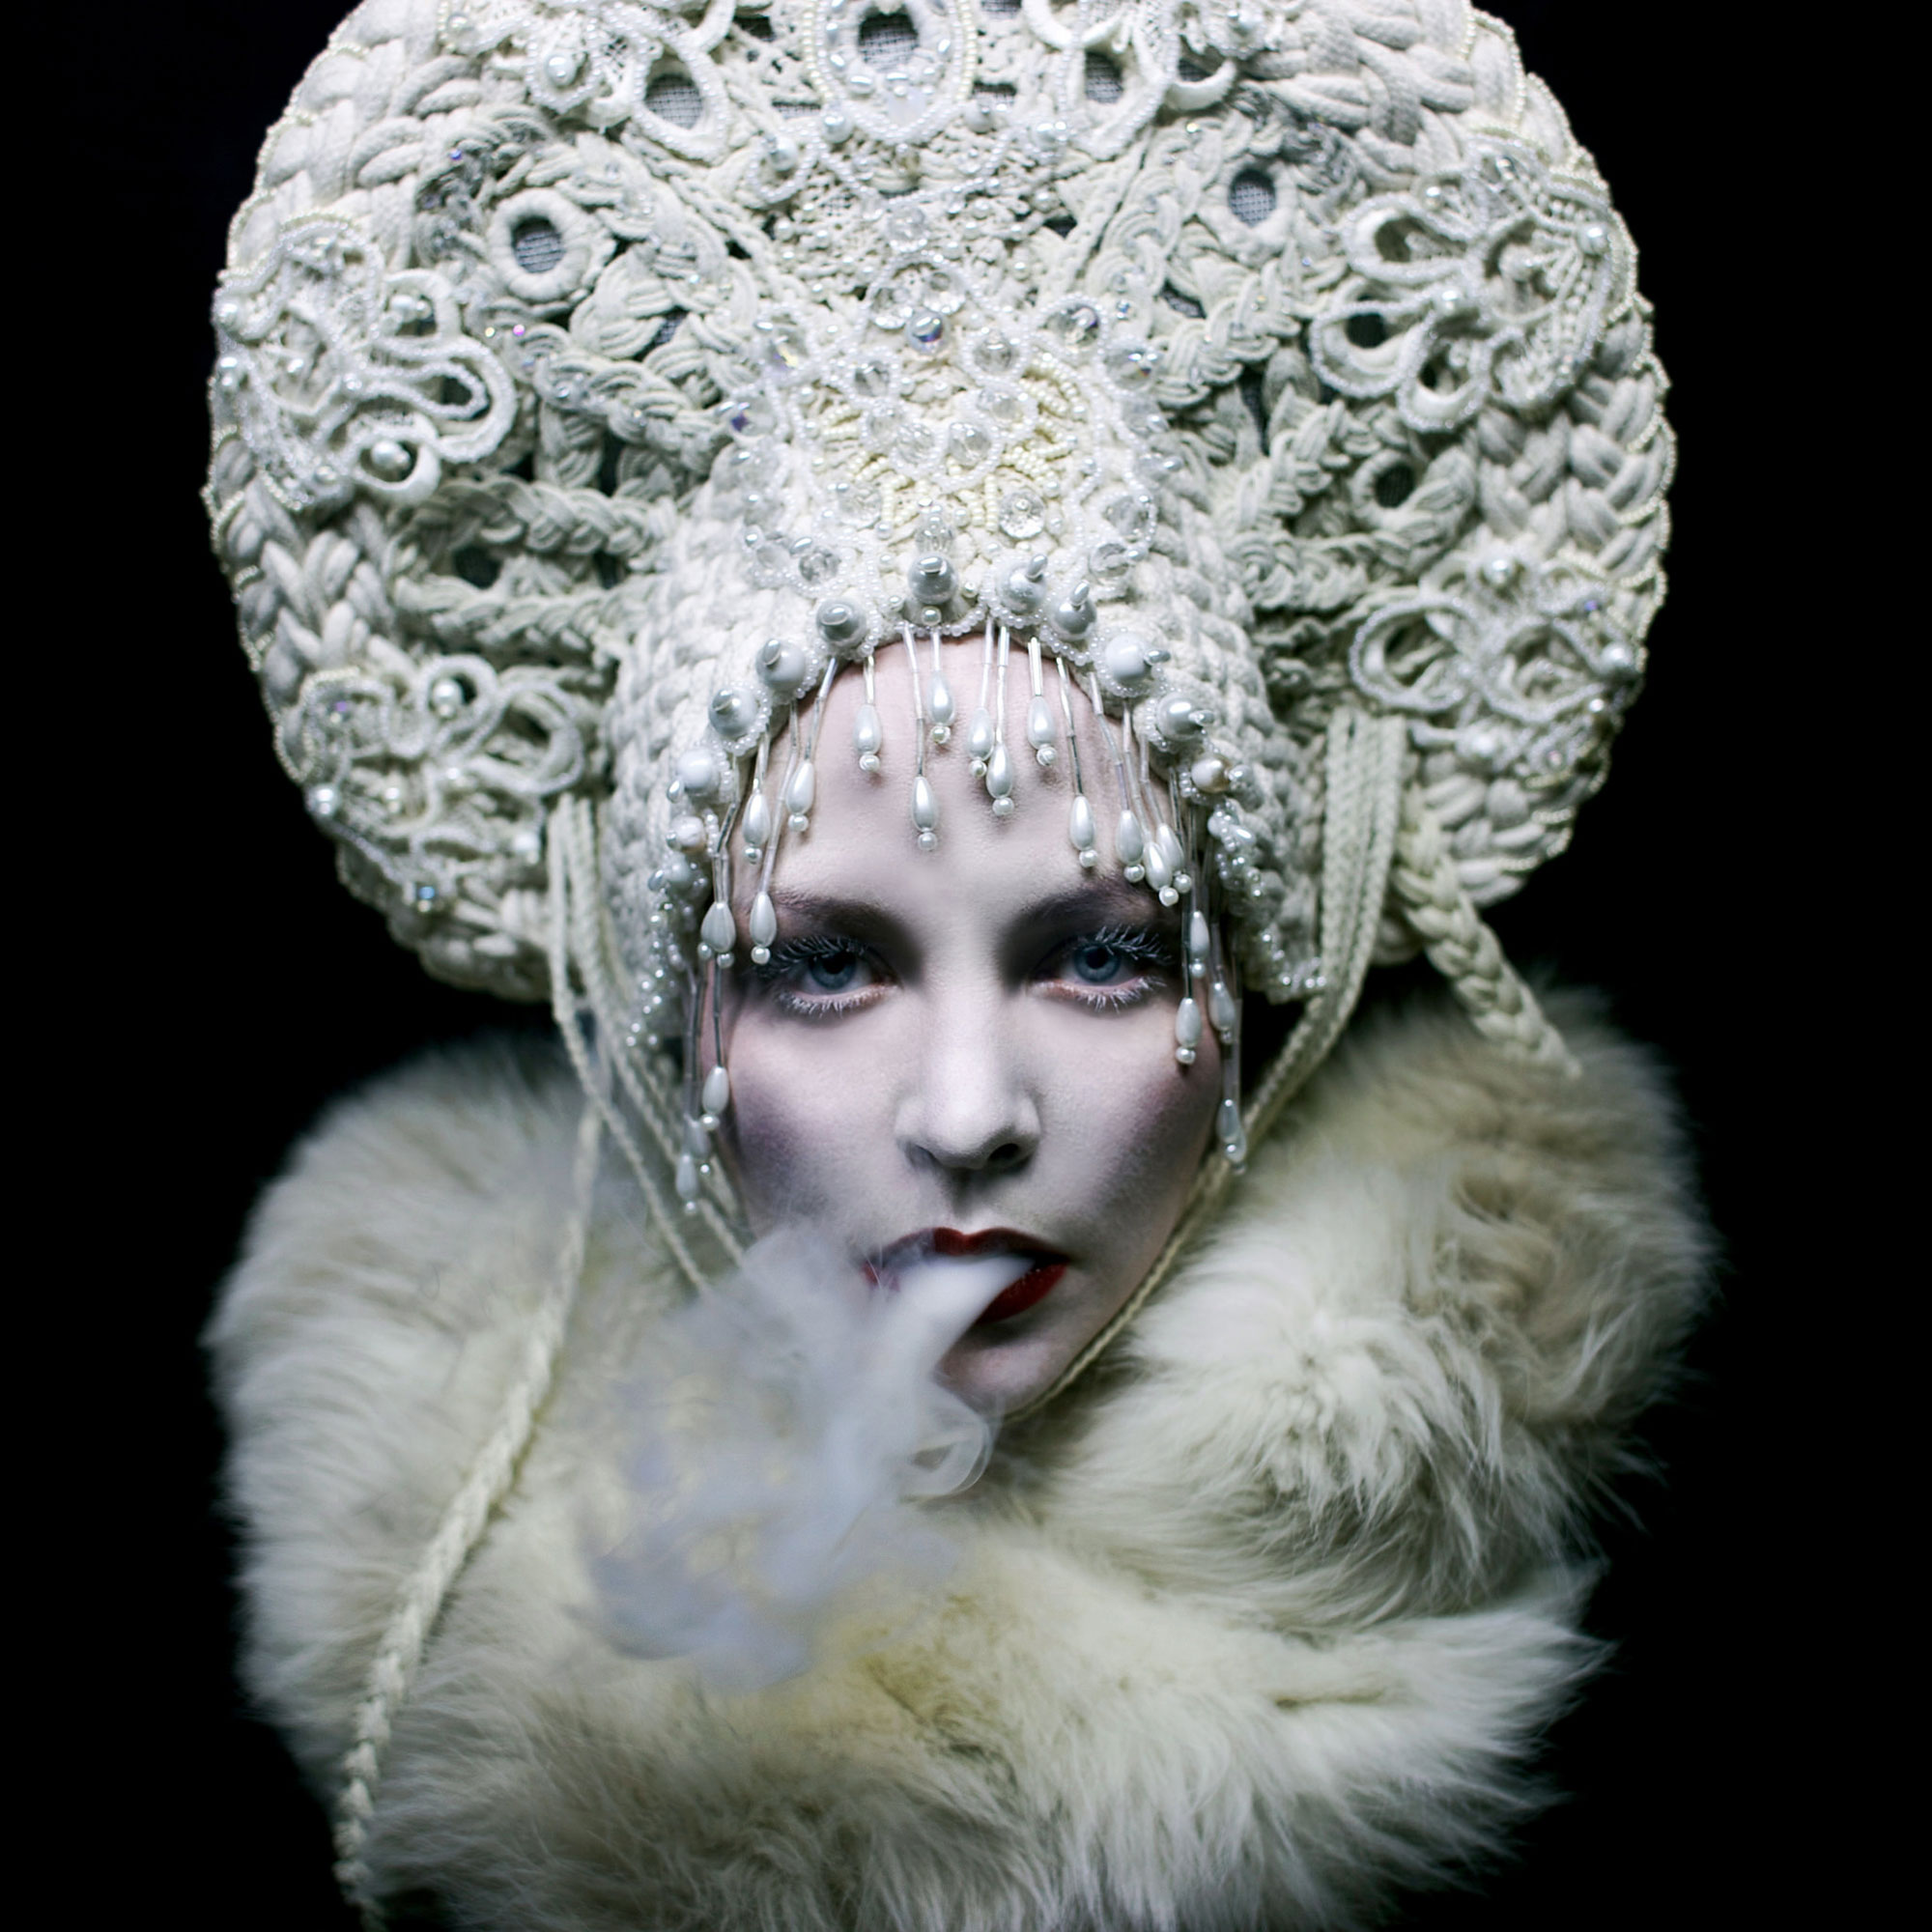 Helen Warner, White Mischief - woman blowing smoking wearing white fur and crown